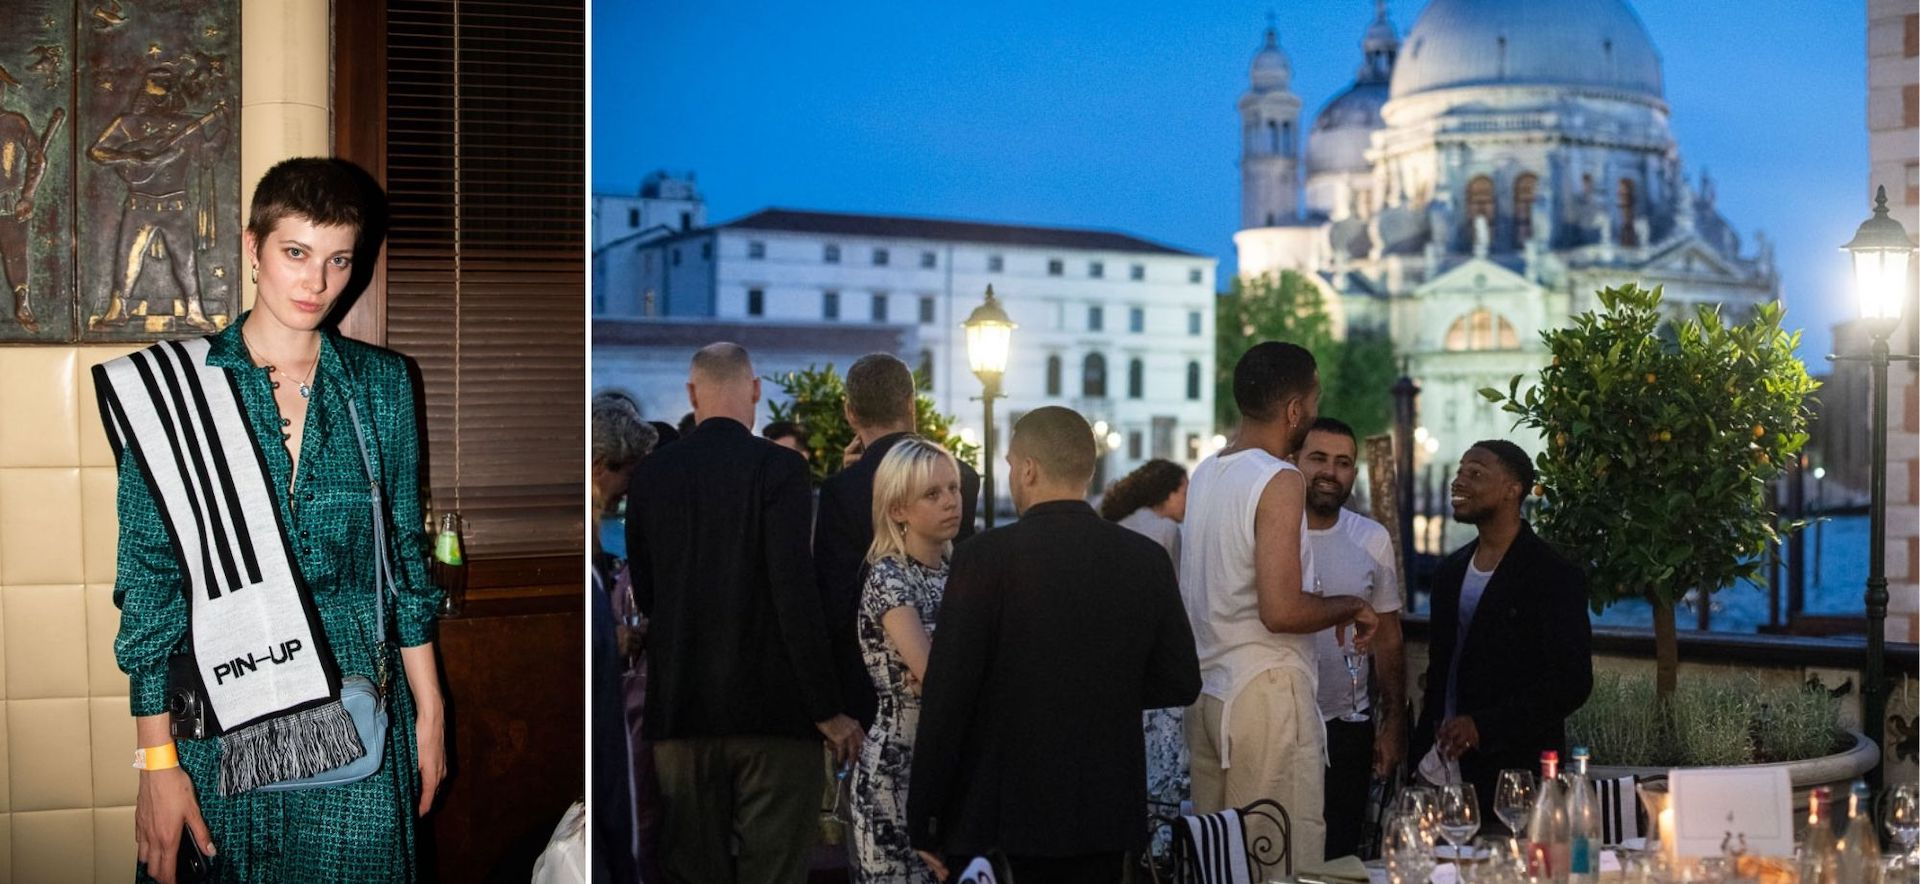 Guests at PIN–UP dinner and dance party at the Bauer Hotel in Venice on the occasion of the preview of the 2018 Biennale Architettura. Photos © Giacomo Cosua for PIN–UP